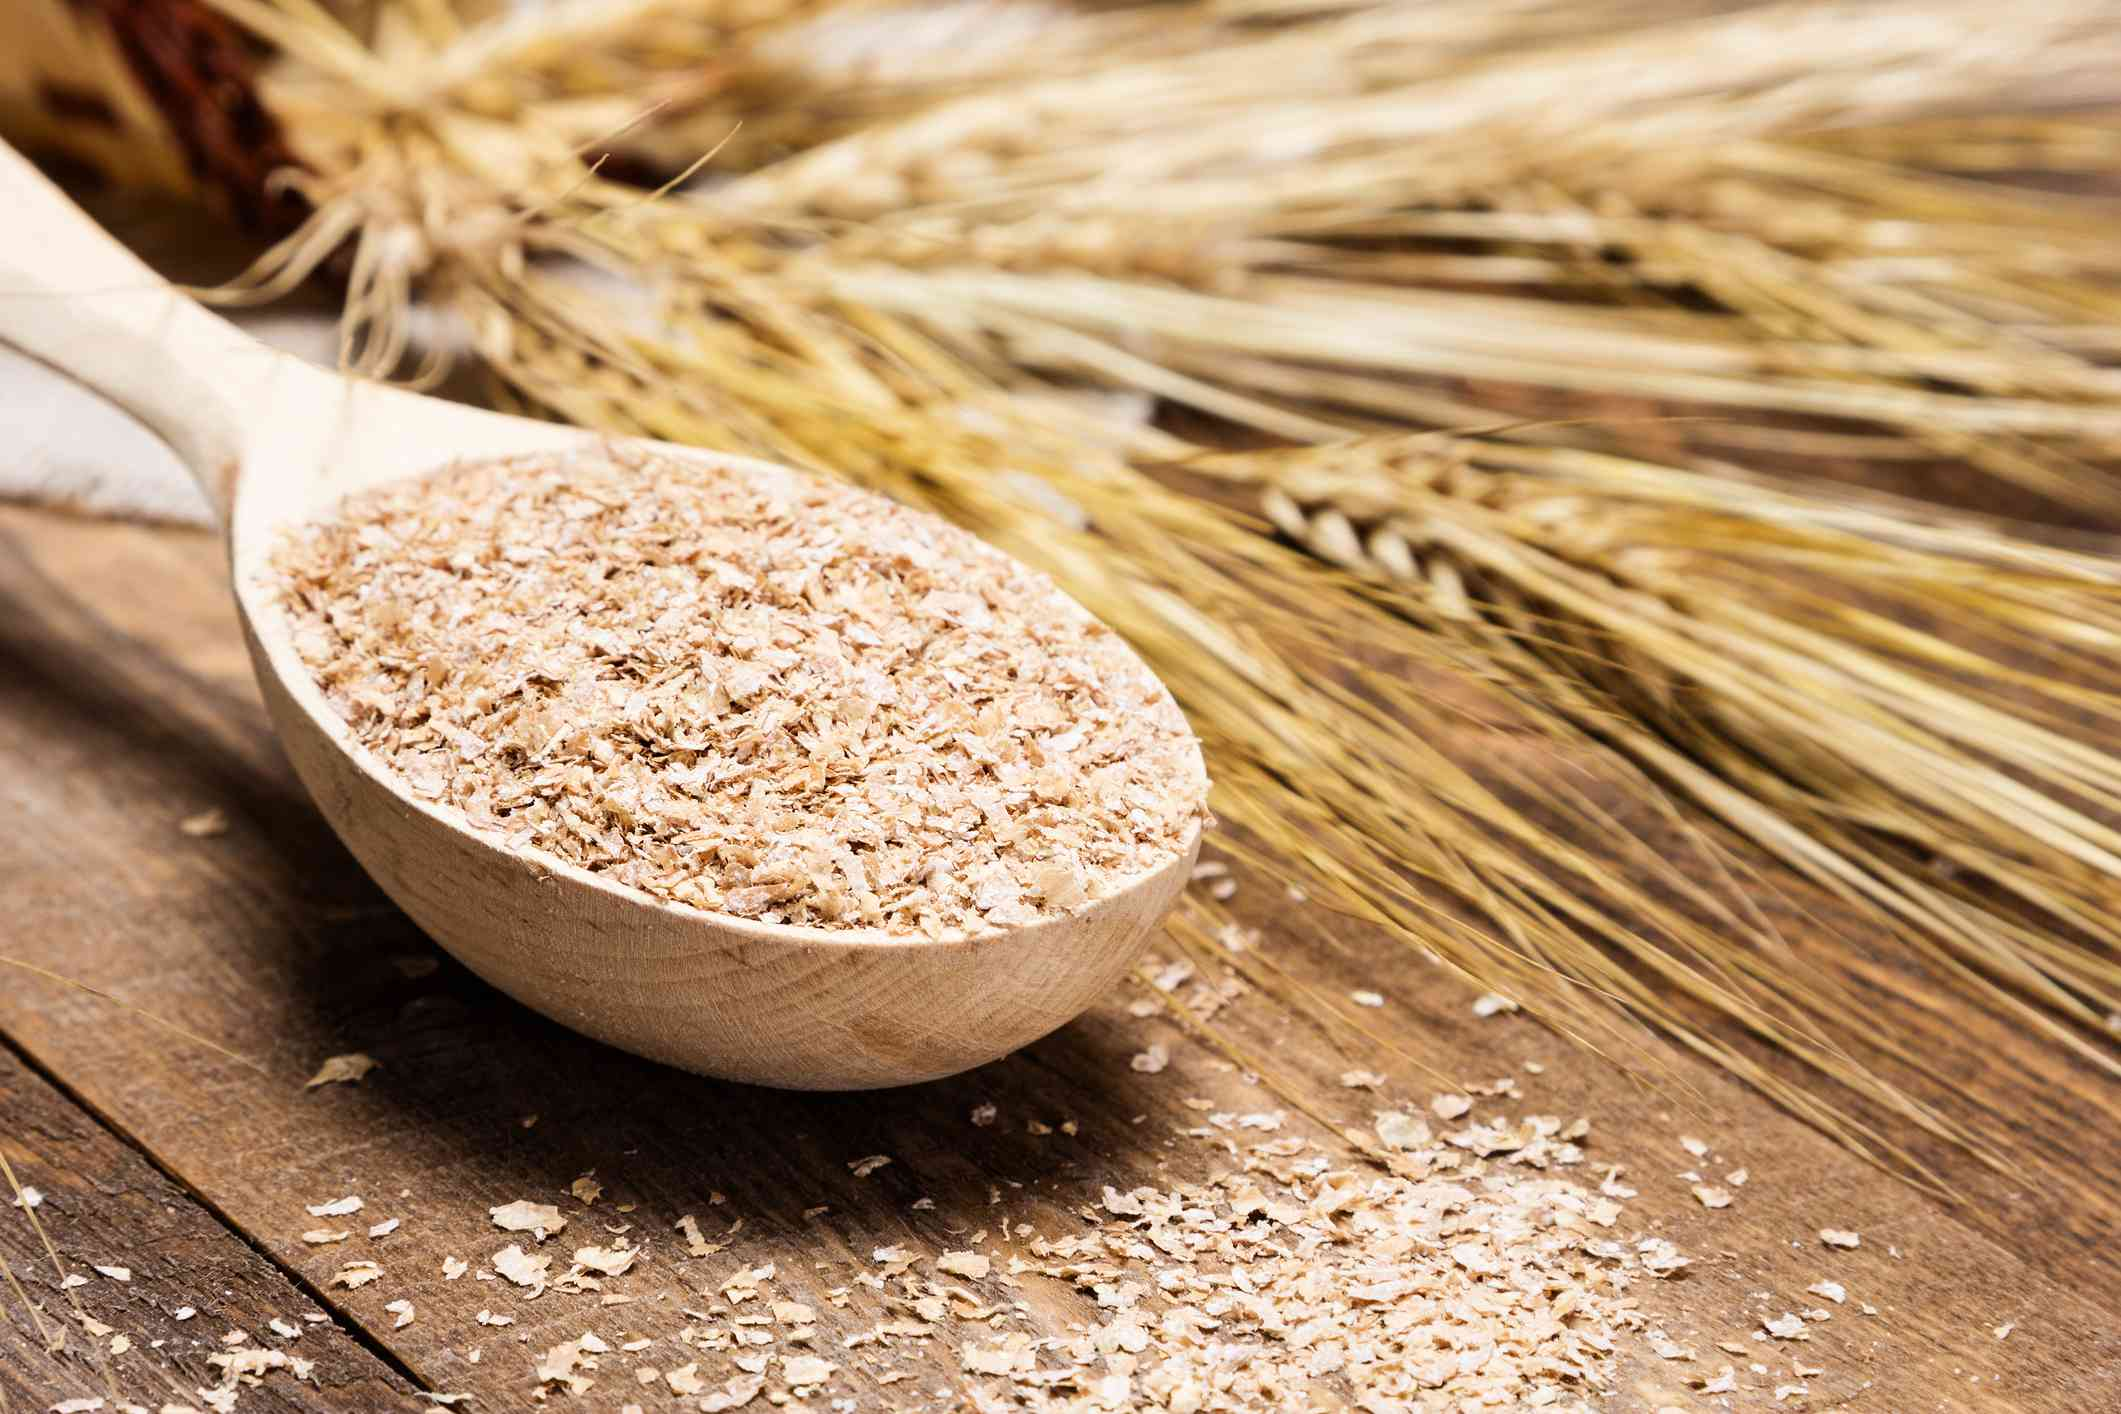 Close-up of wooden spoon filled with wheat bran